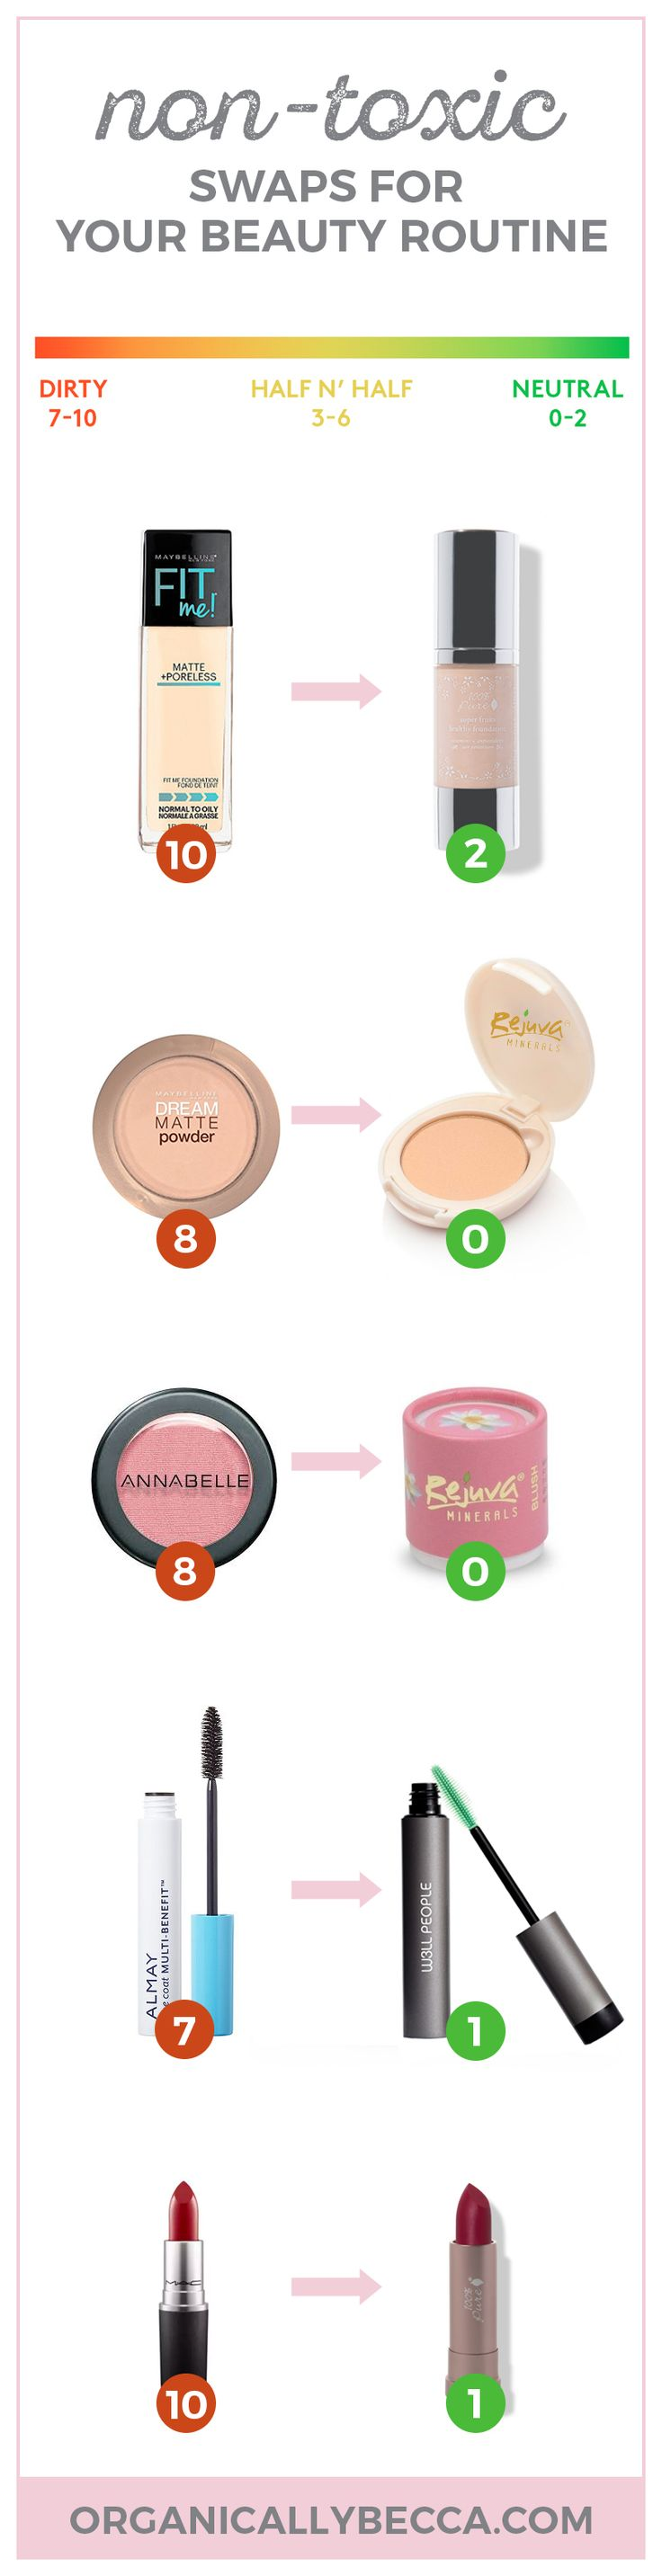 Non-toxic swaps for your green beauty routine, dupes, organic makeup